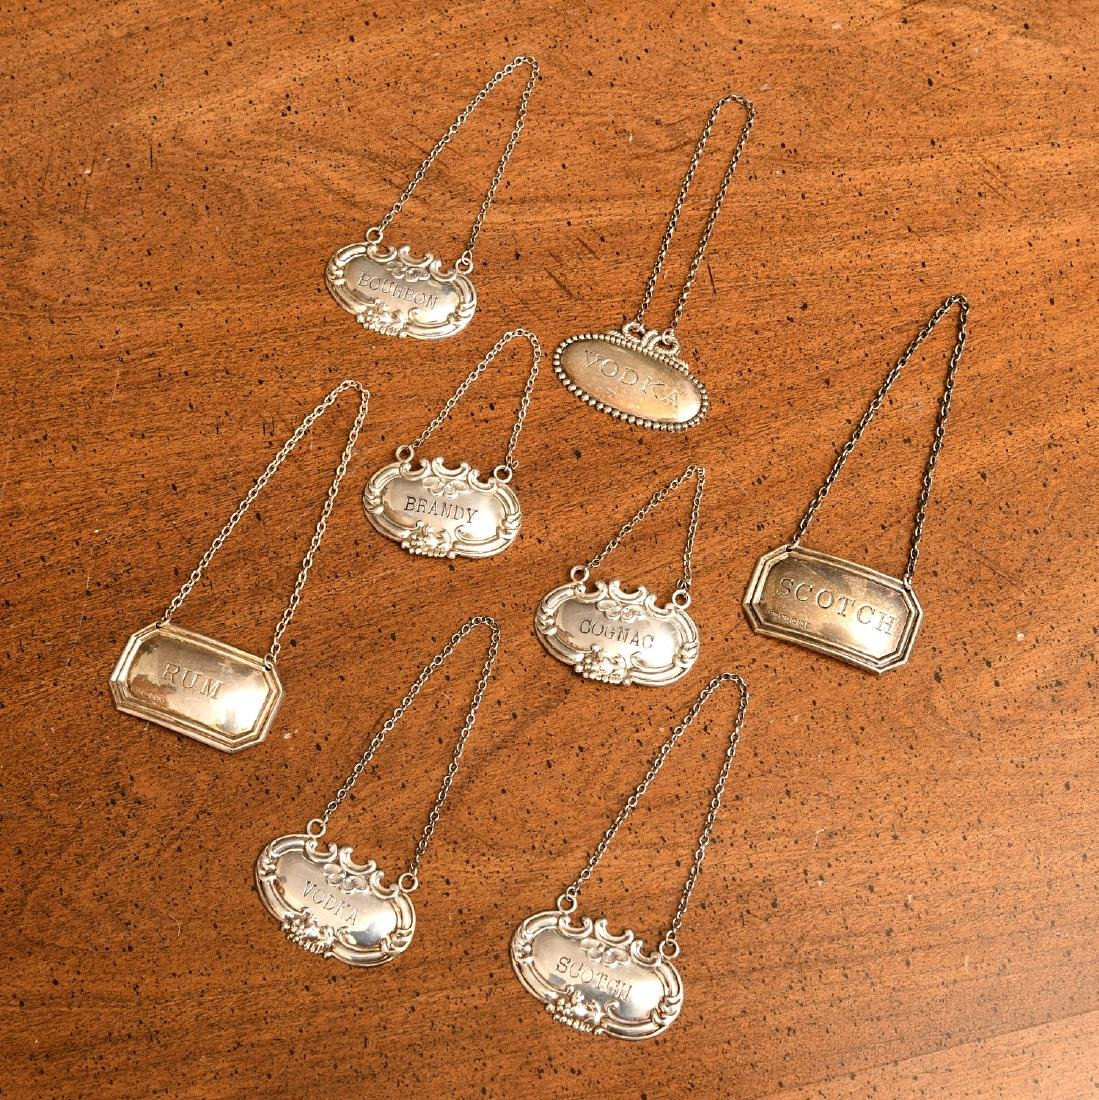 (7) Silver and sterling silver decanter labels